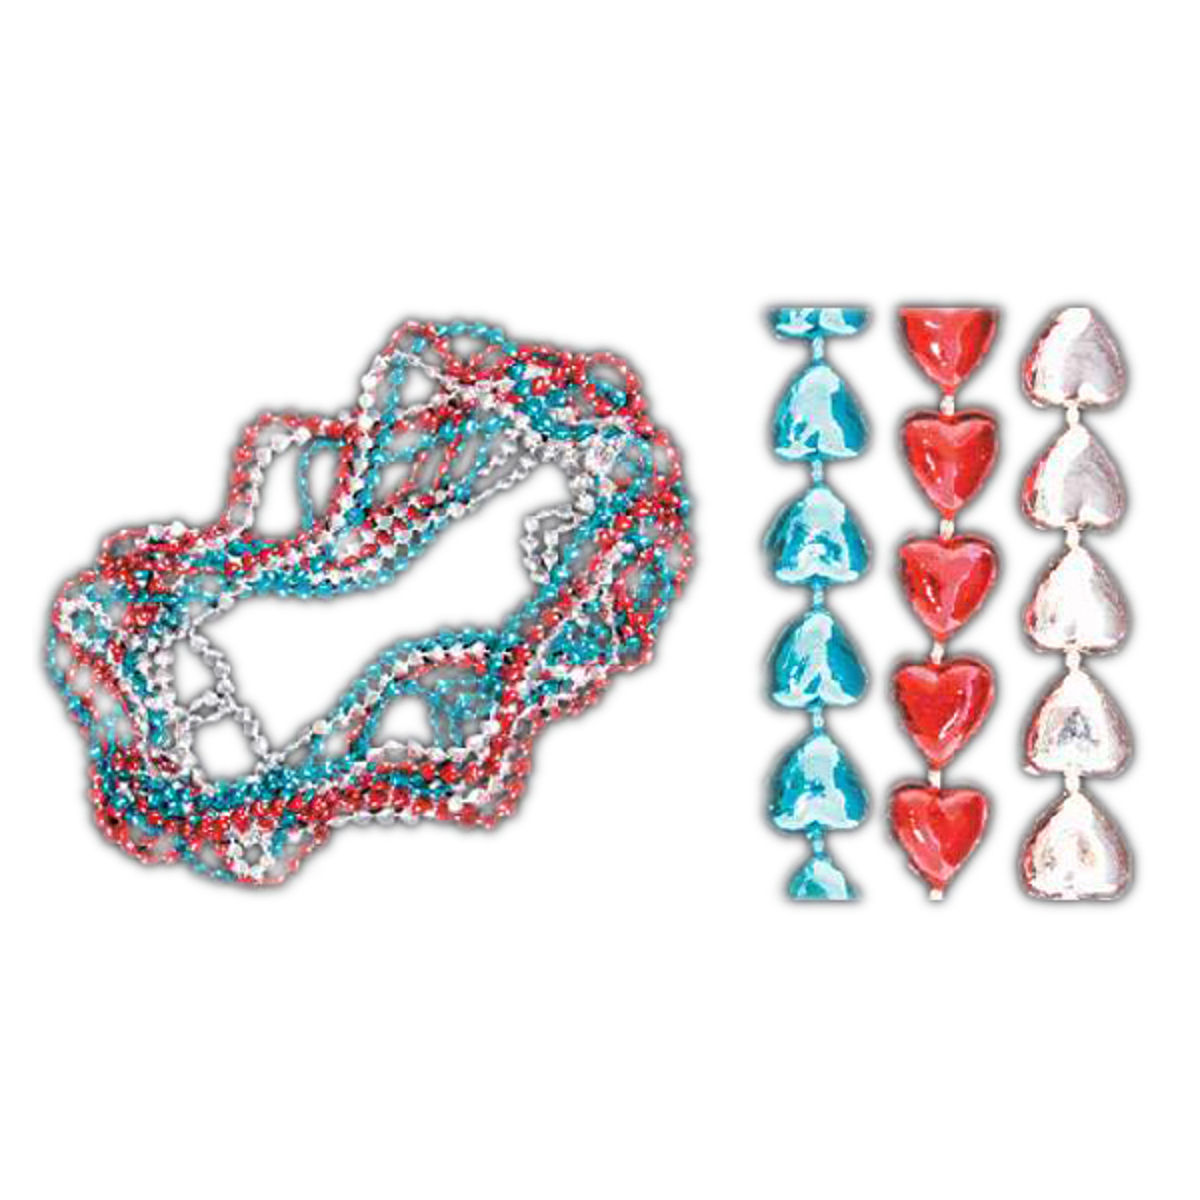 Sweet Heart Necklace Red White and Blue Pack of 12 4th of July